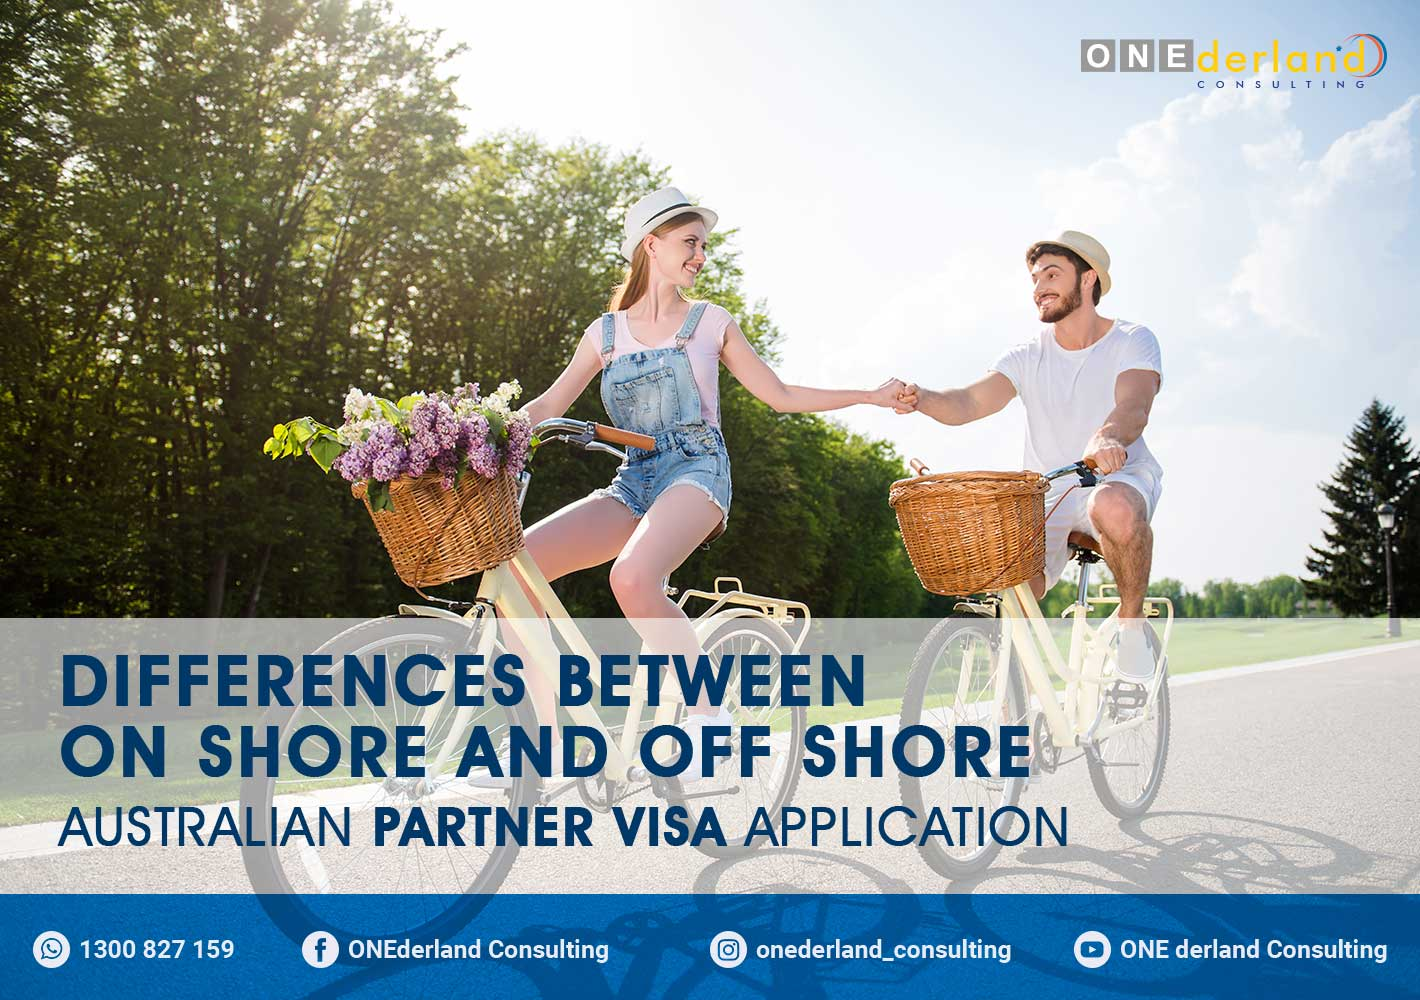 Differences Between Onshore and Offshore Australian Partner Visa Application